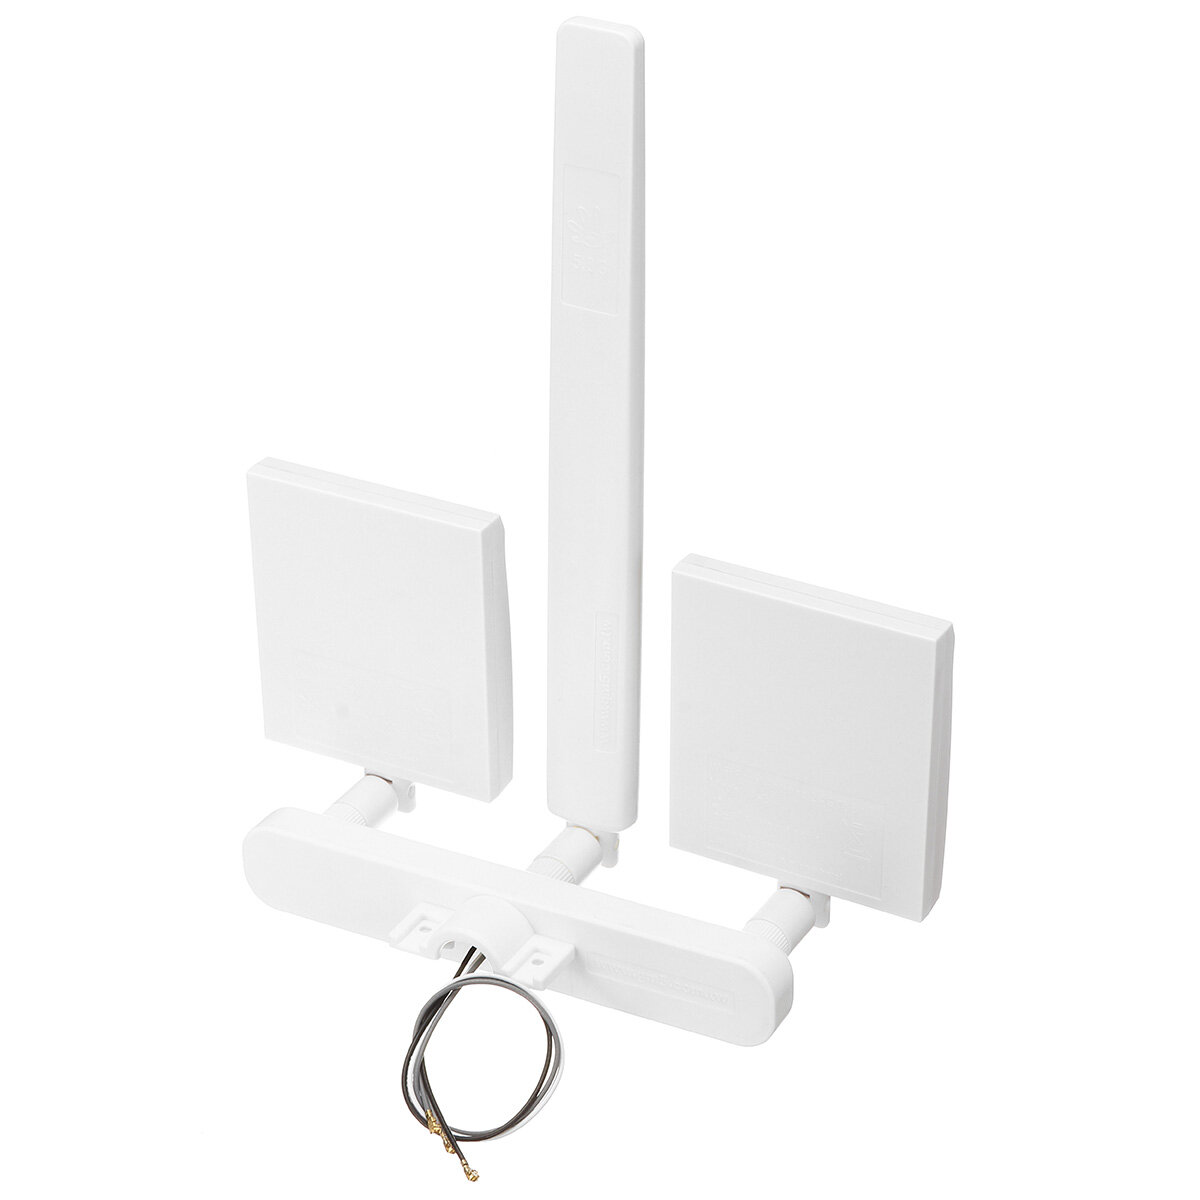 AC8 2.4G/5GHz Dual Band WiFi Signal Wireless Cable Router 1000Mbps Support VPN - 6